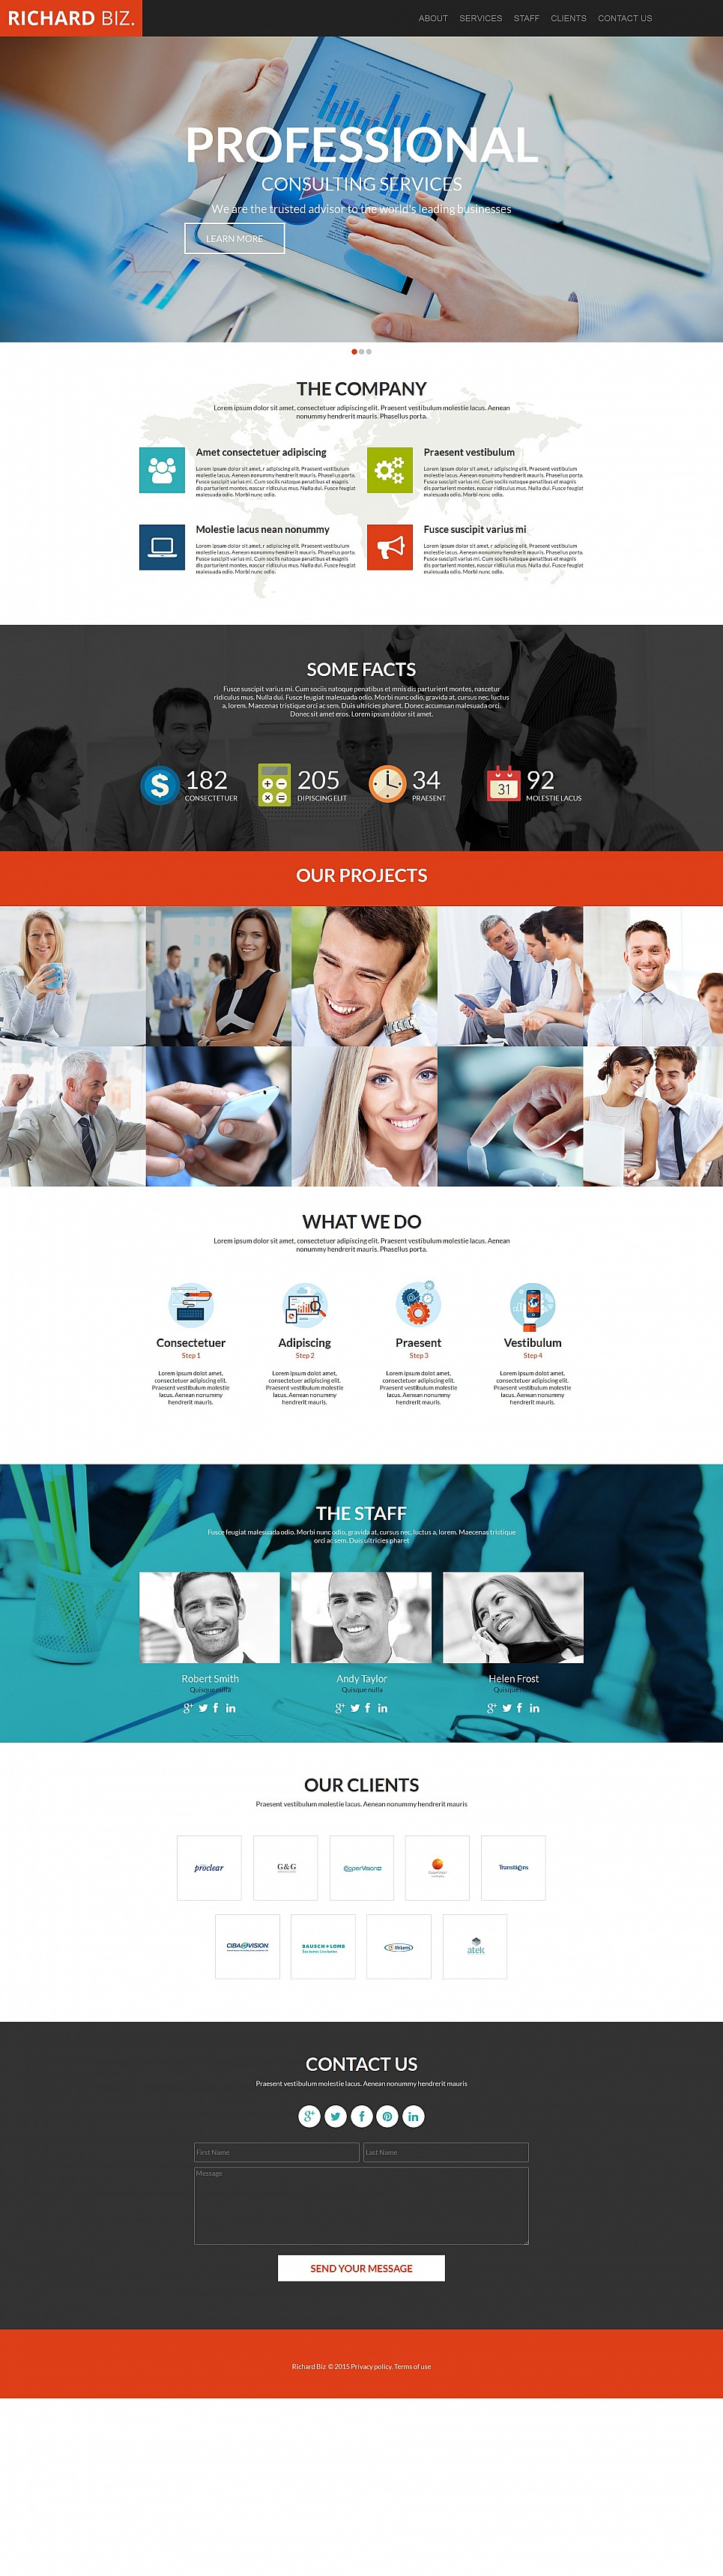 Business MotoCMS HTML Template #54919 - image